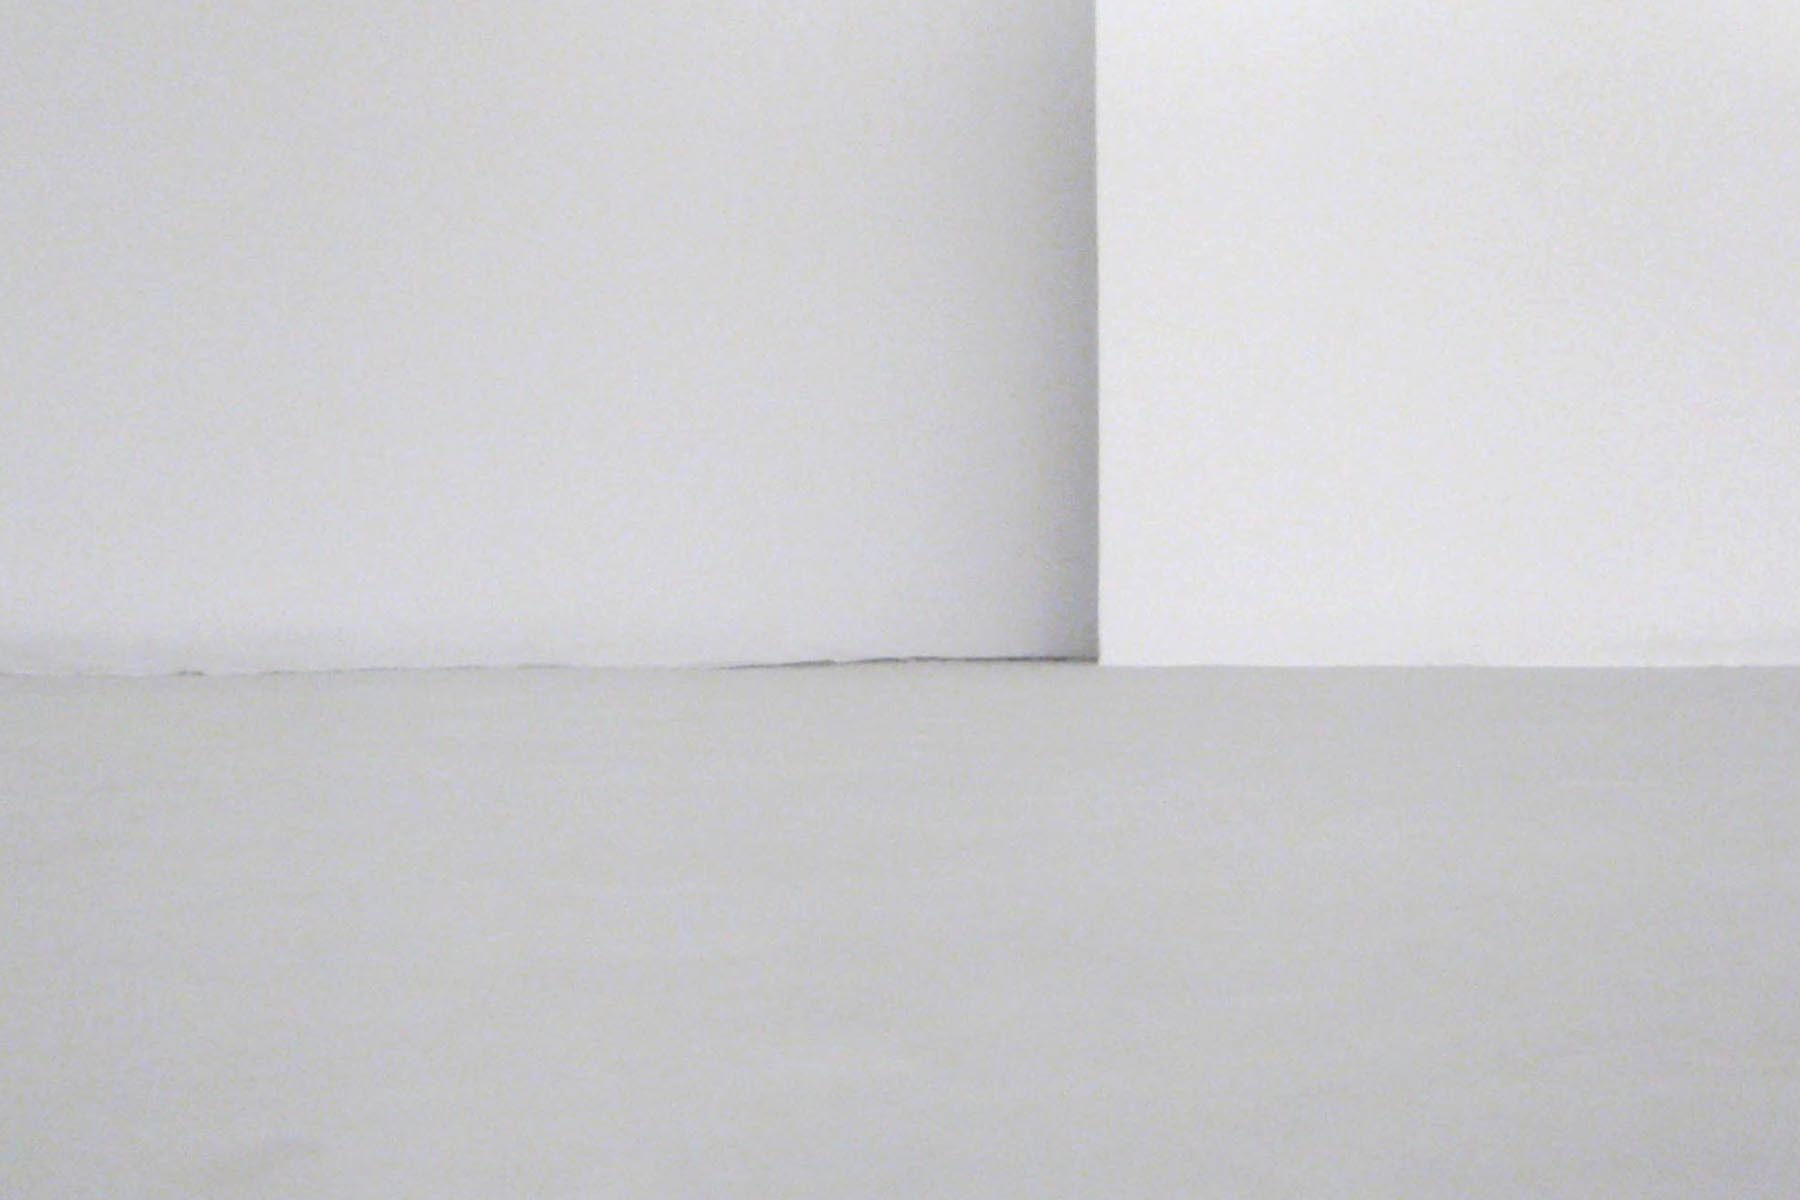 M. Spanghero, Exhibition Room, 2010, print on dibond